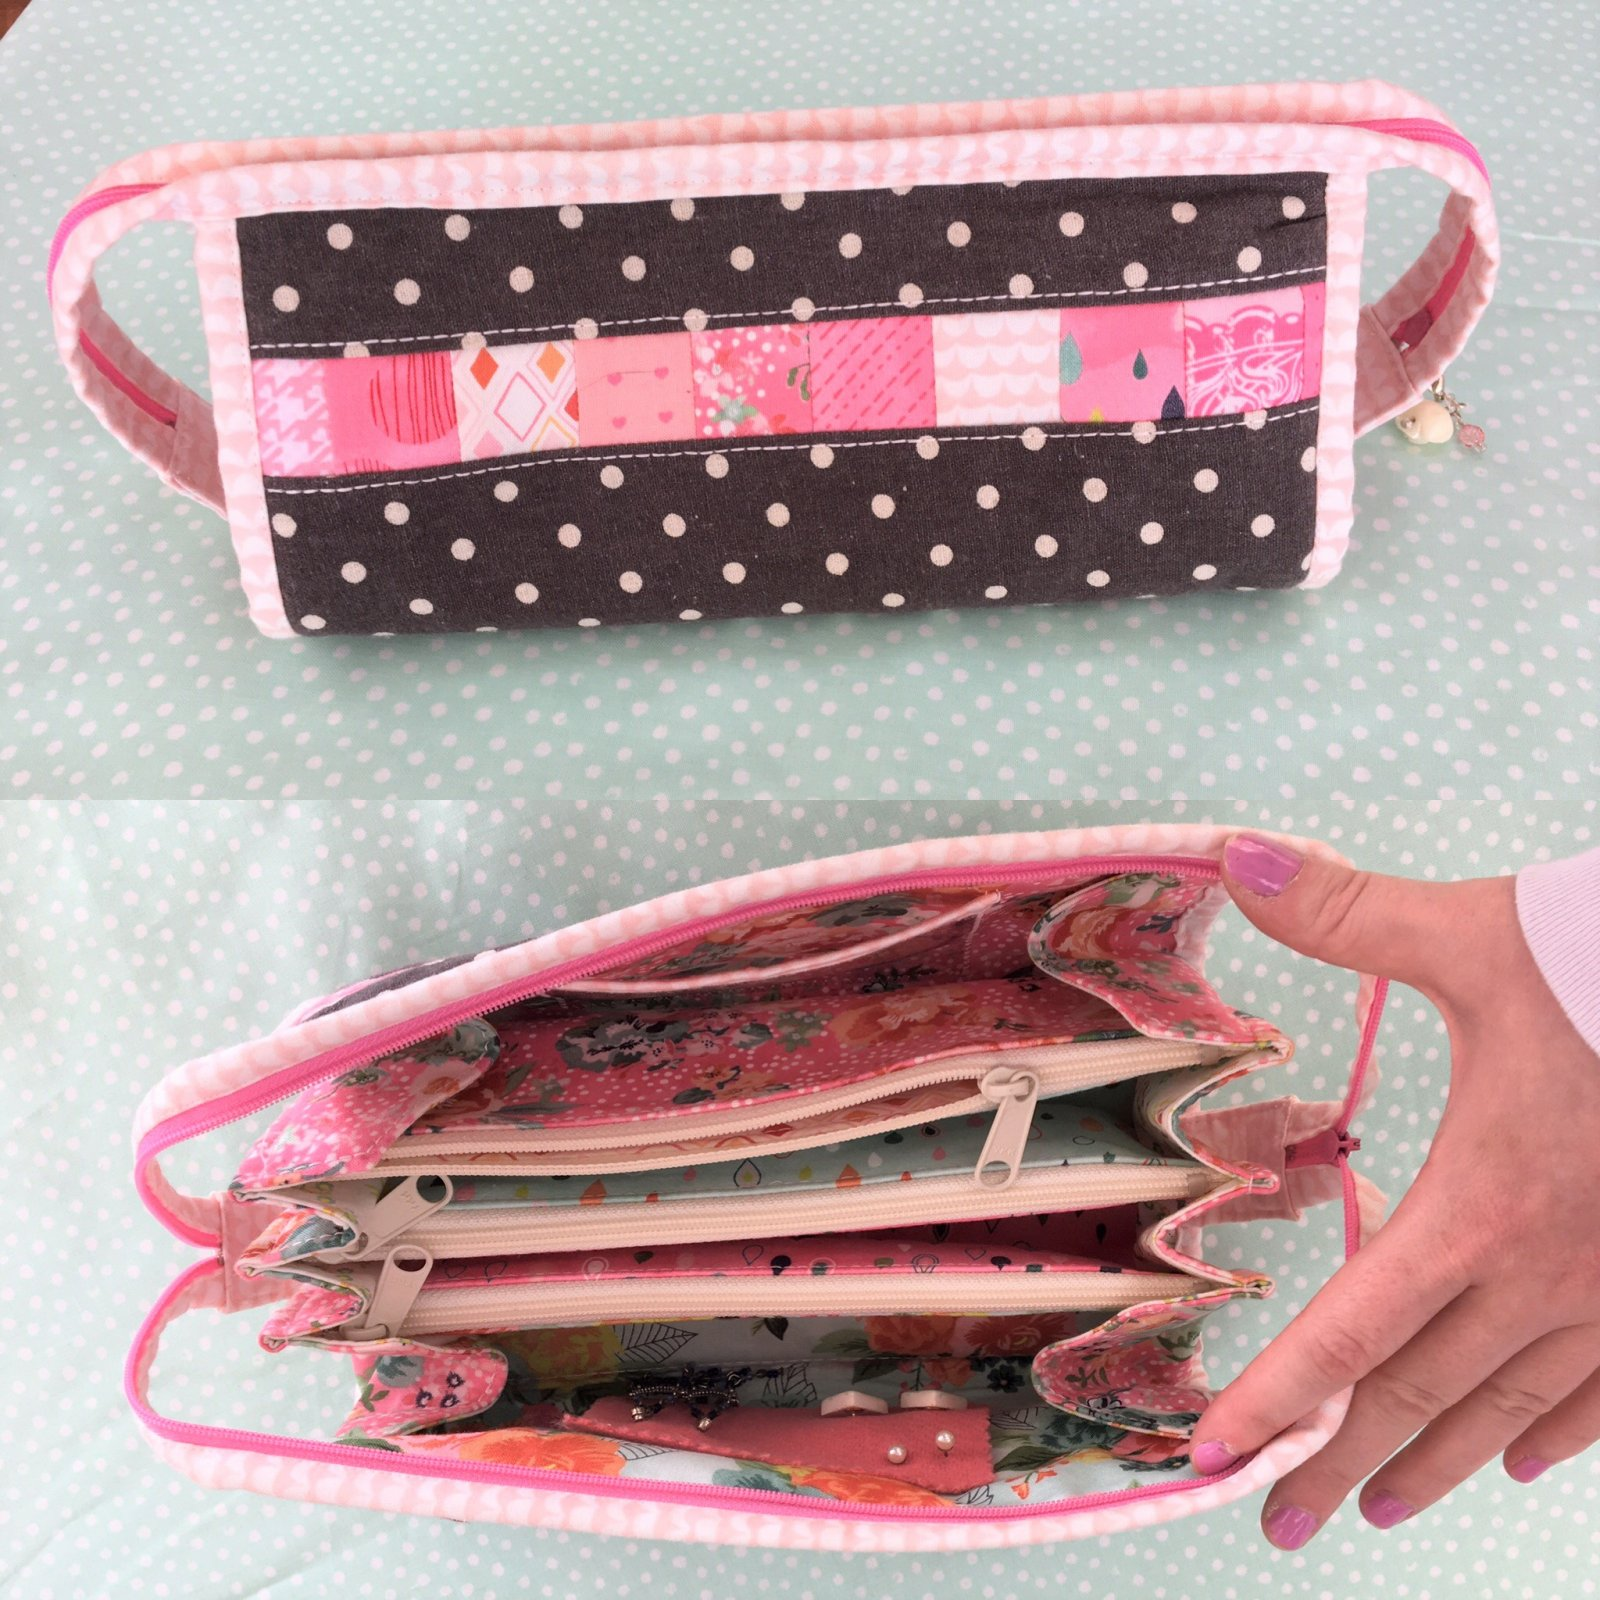 Sew Together Bag Kit